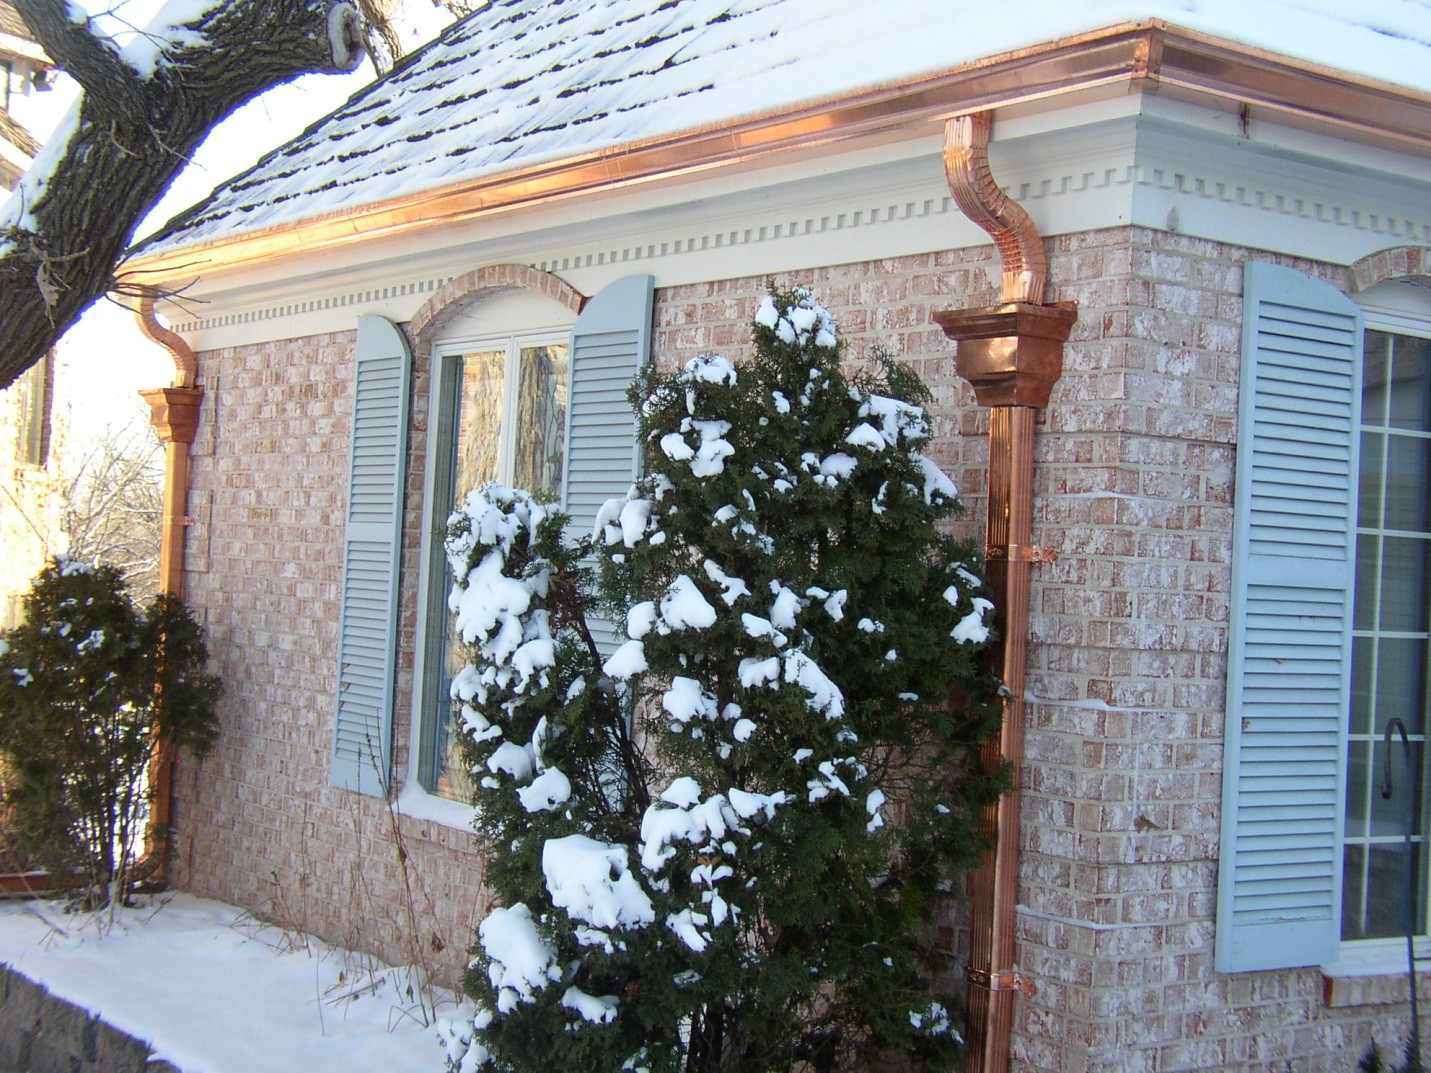 The benefits and drawbacks of copper gutters roselyn bette medium beautiful isnt it solutioingenieria Image collections